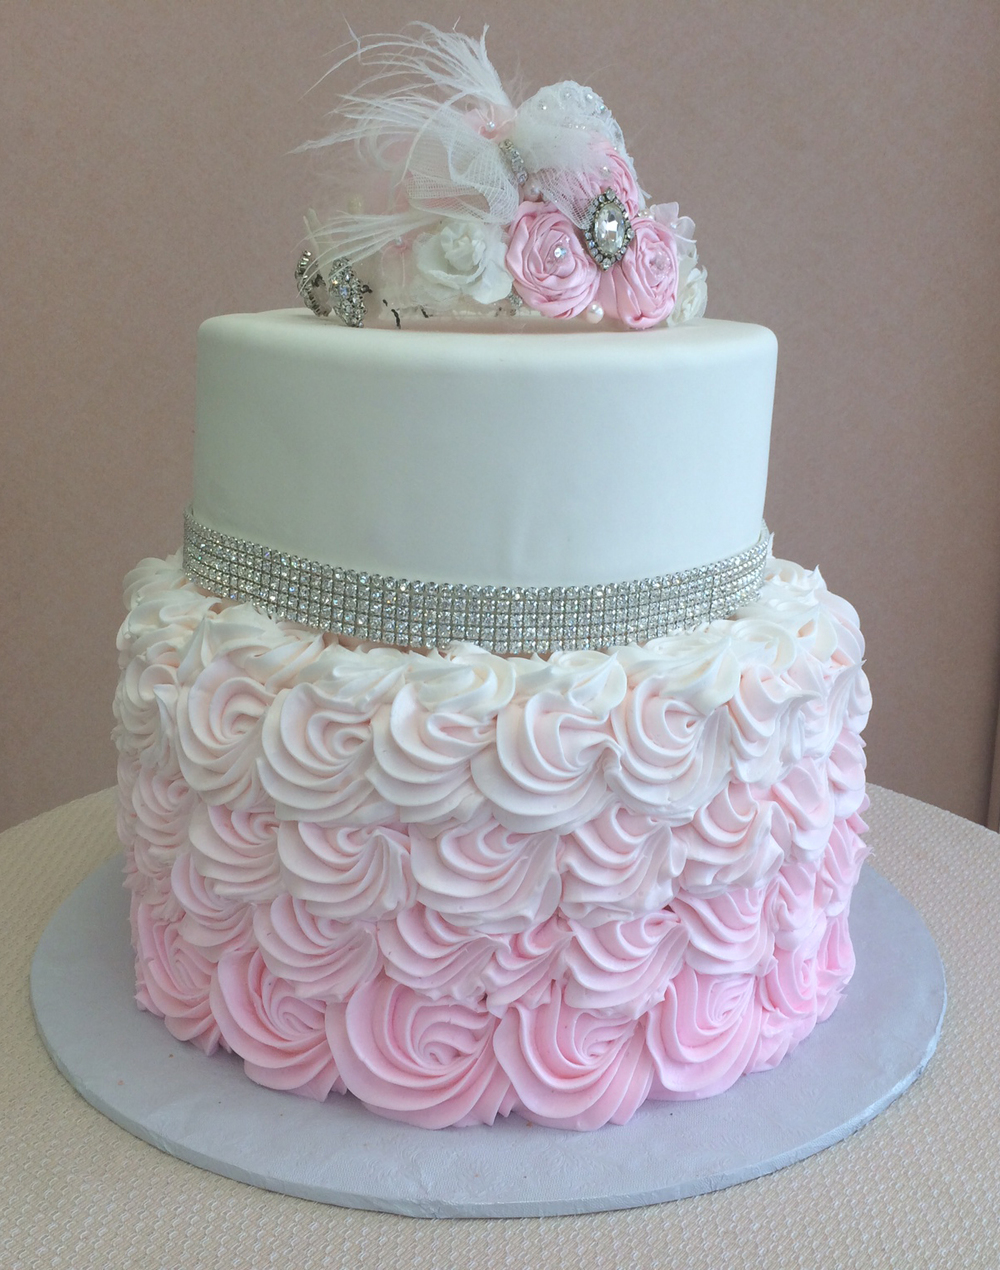 Tiered Cakes For All Occasions Sal Amp Dom S Pastry Shop